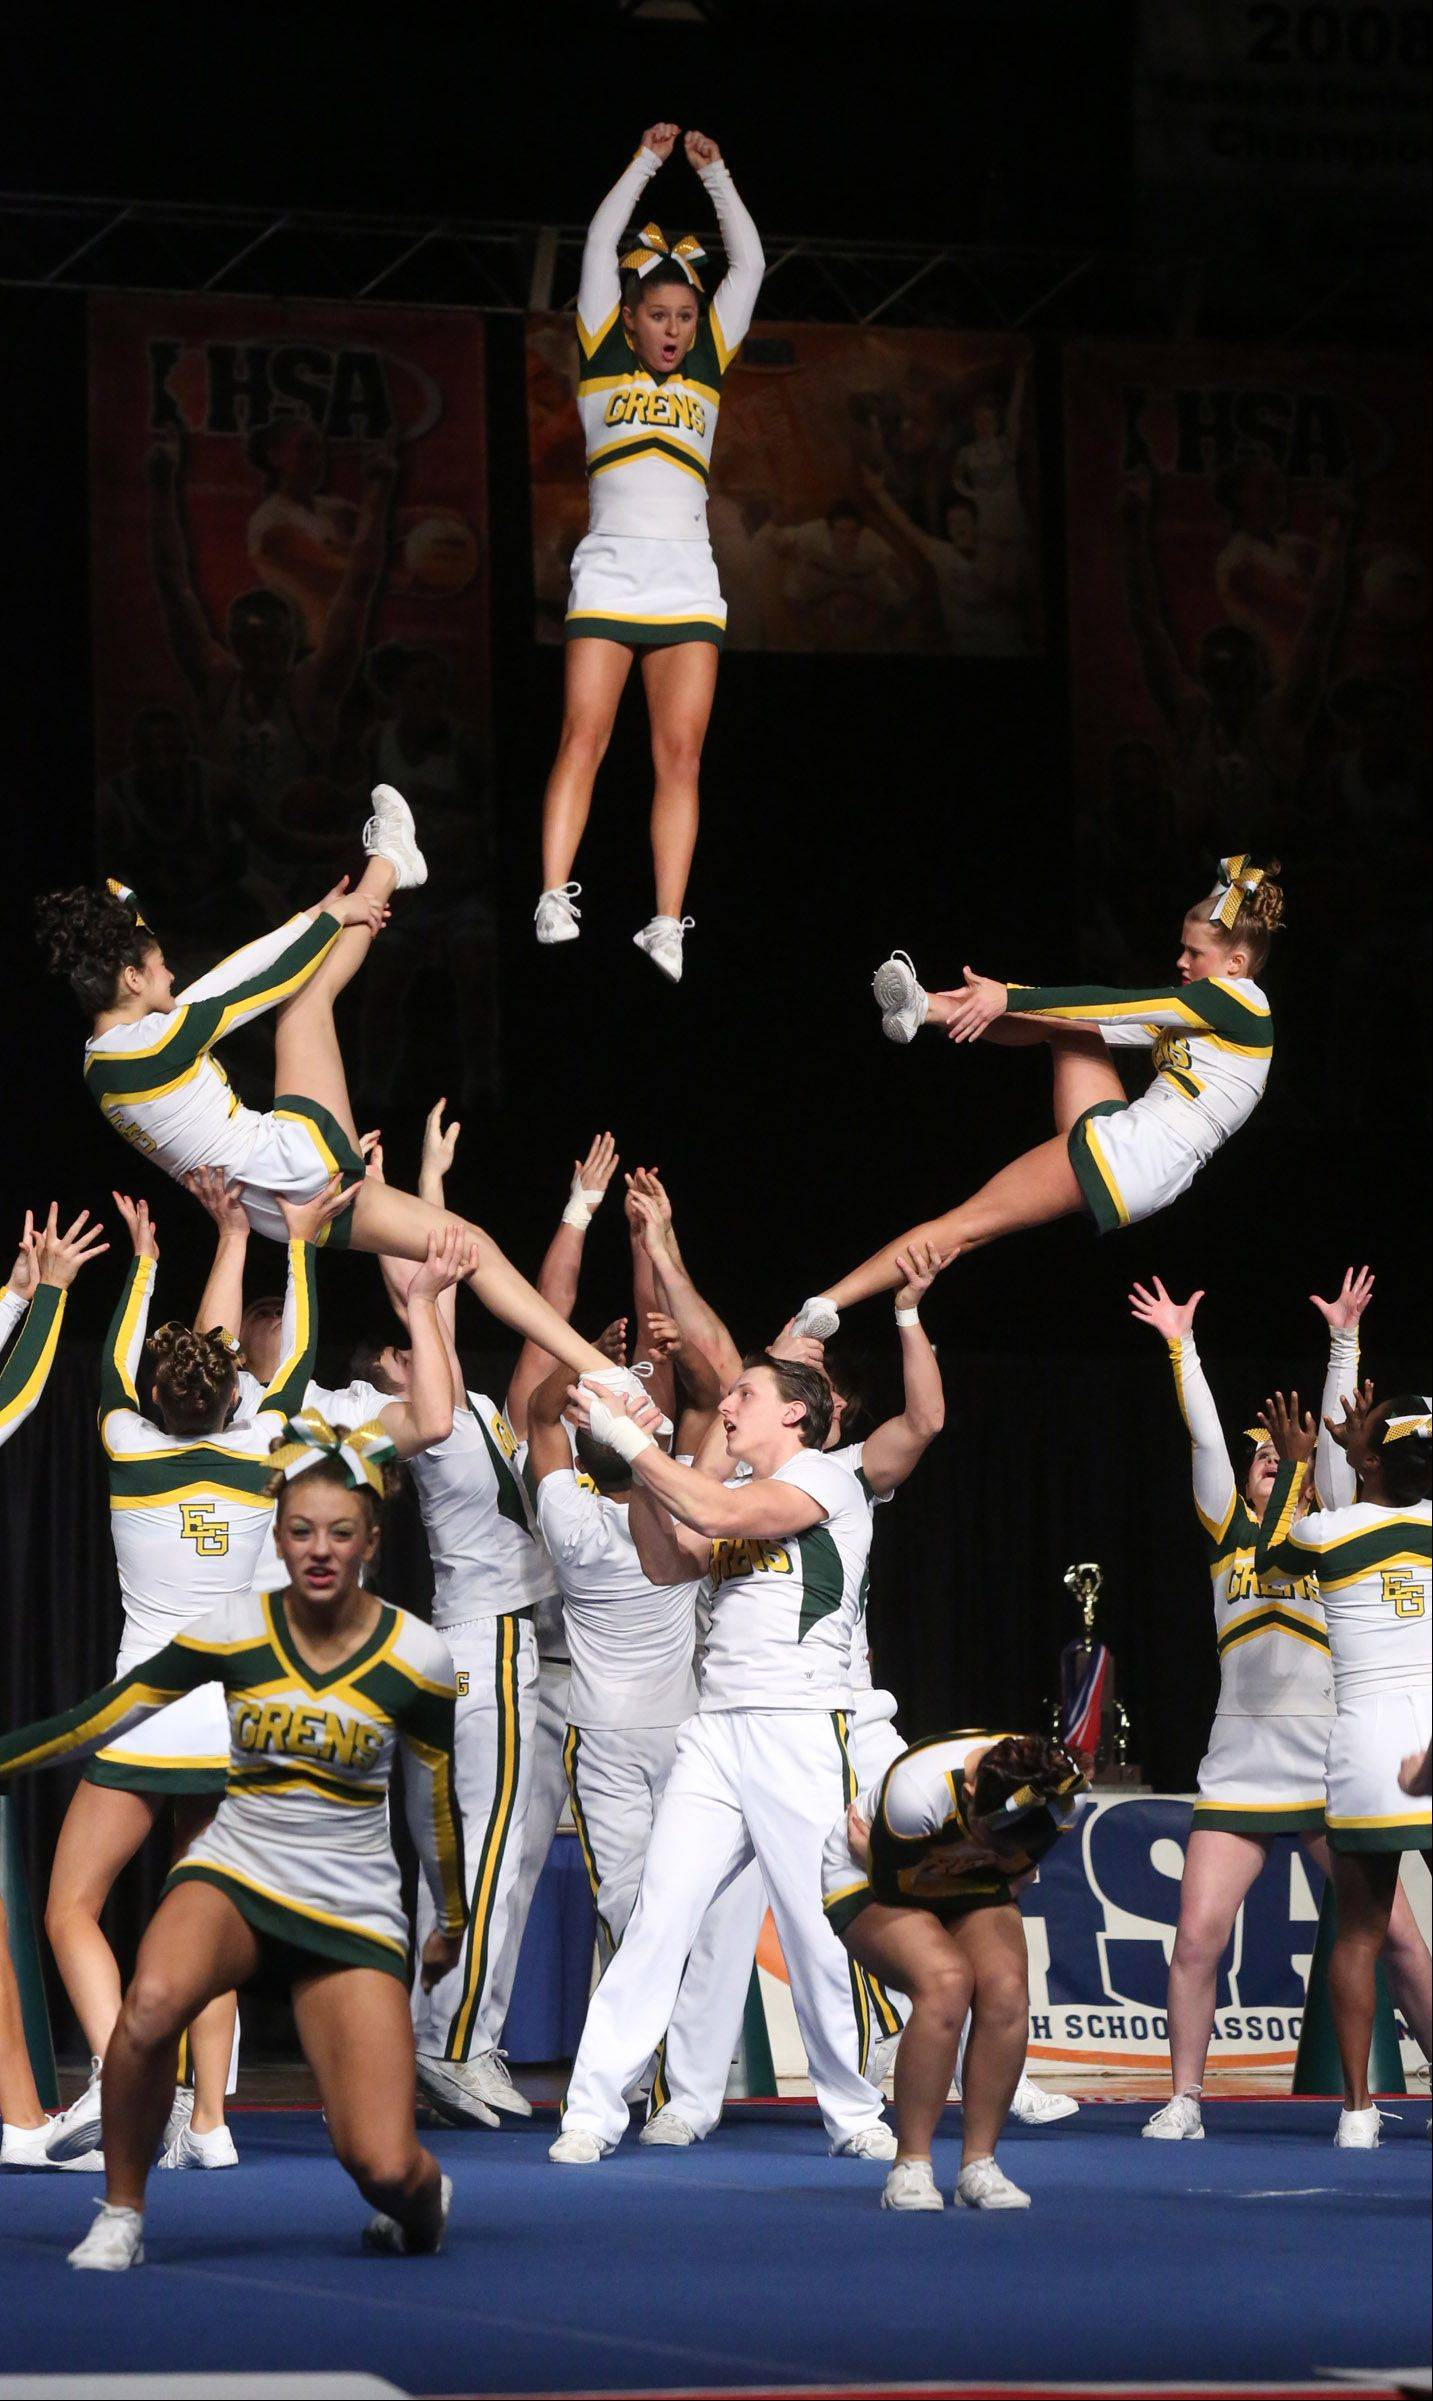 Elk Grove High School's cheer team performs in the coed team category in preliminary rounds of IHSA state championships on Friday in Bloomington.